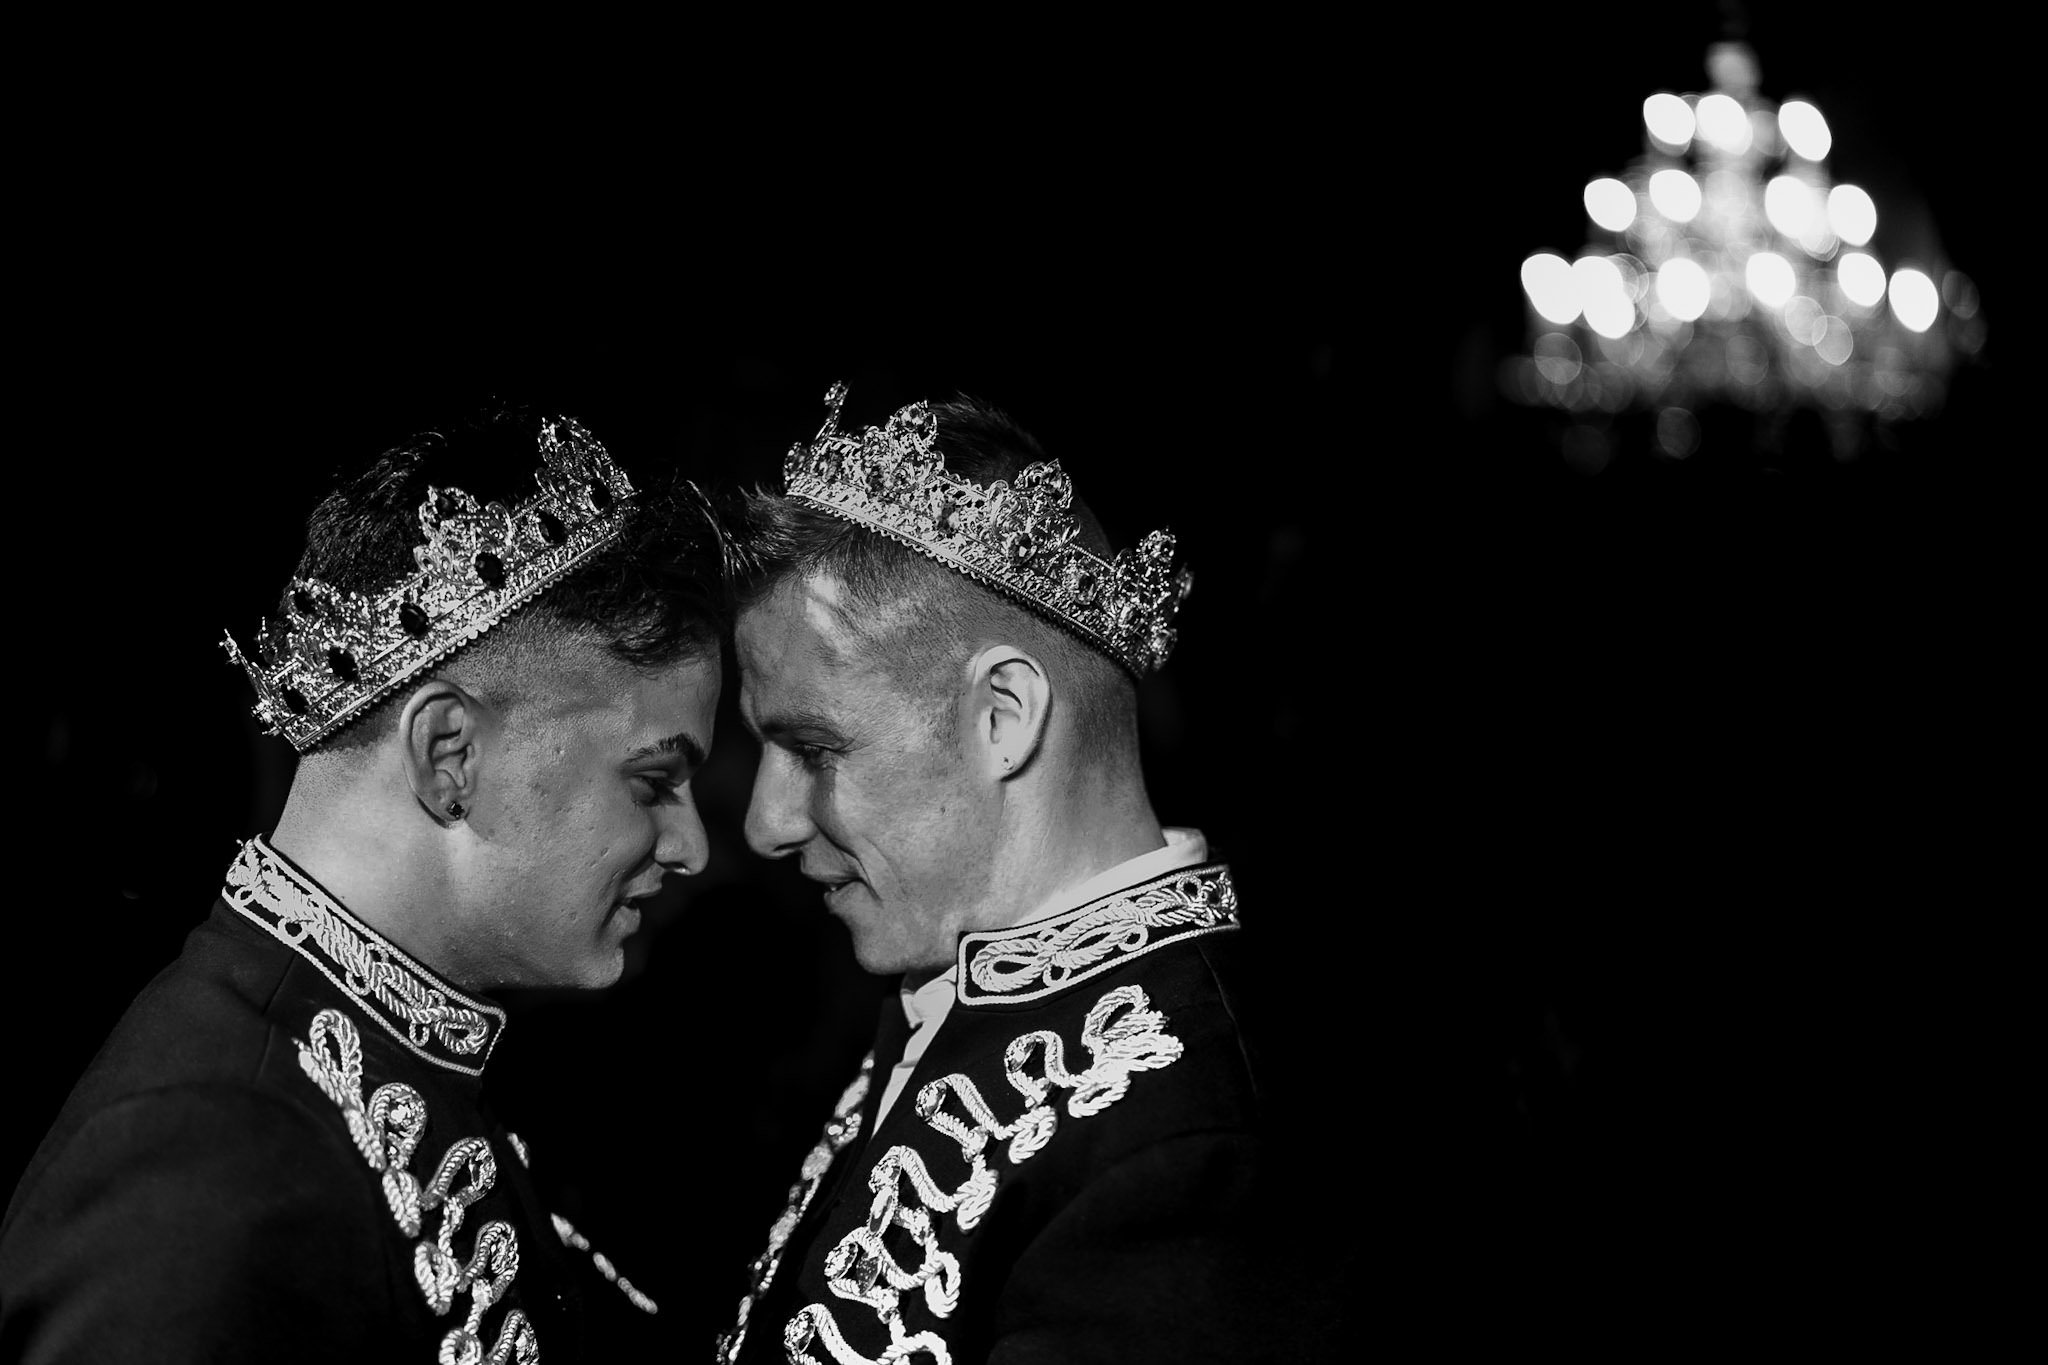 Allerton Castle Knaresborough Hutchinson Weddings Photography groom and groom head to head during first dance in the great hall chandelier providing light black and white